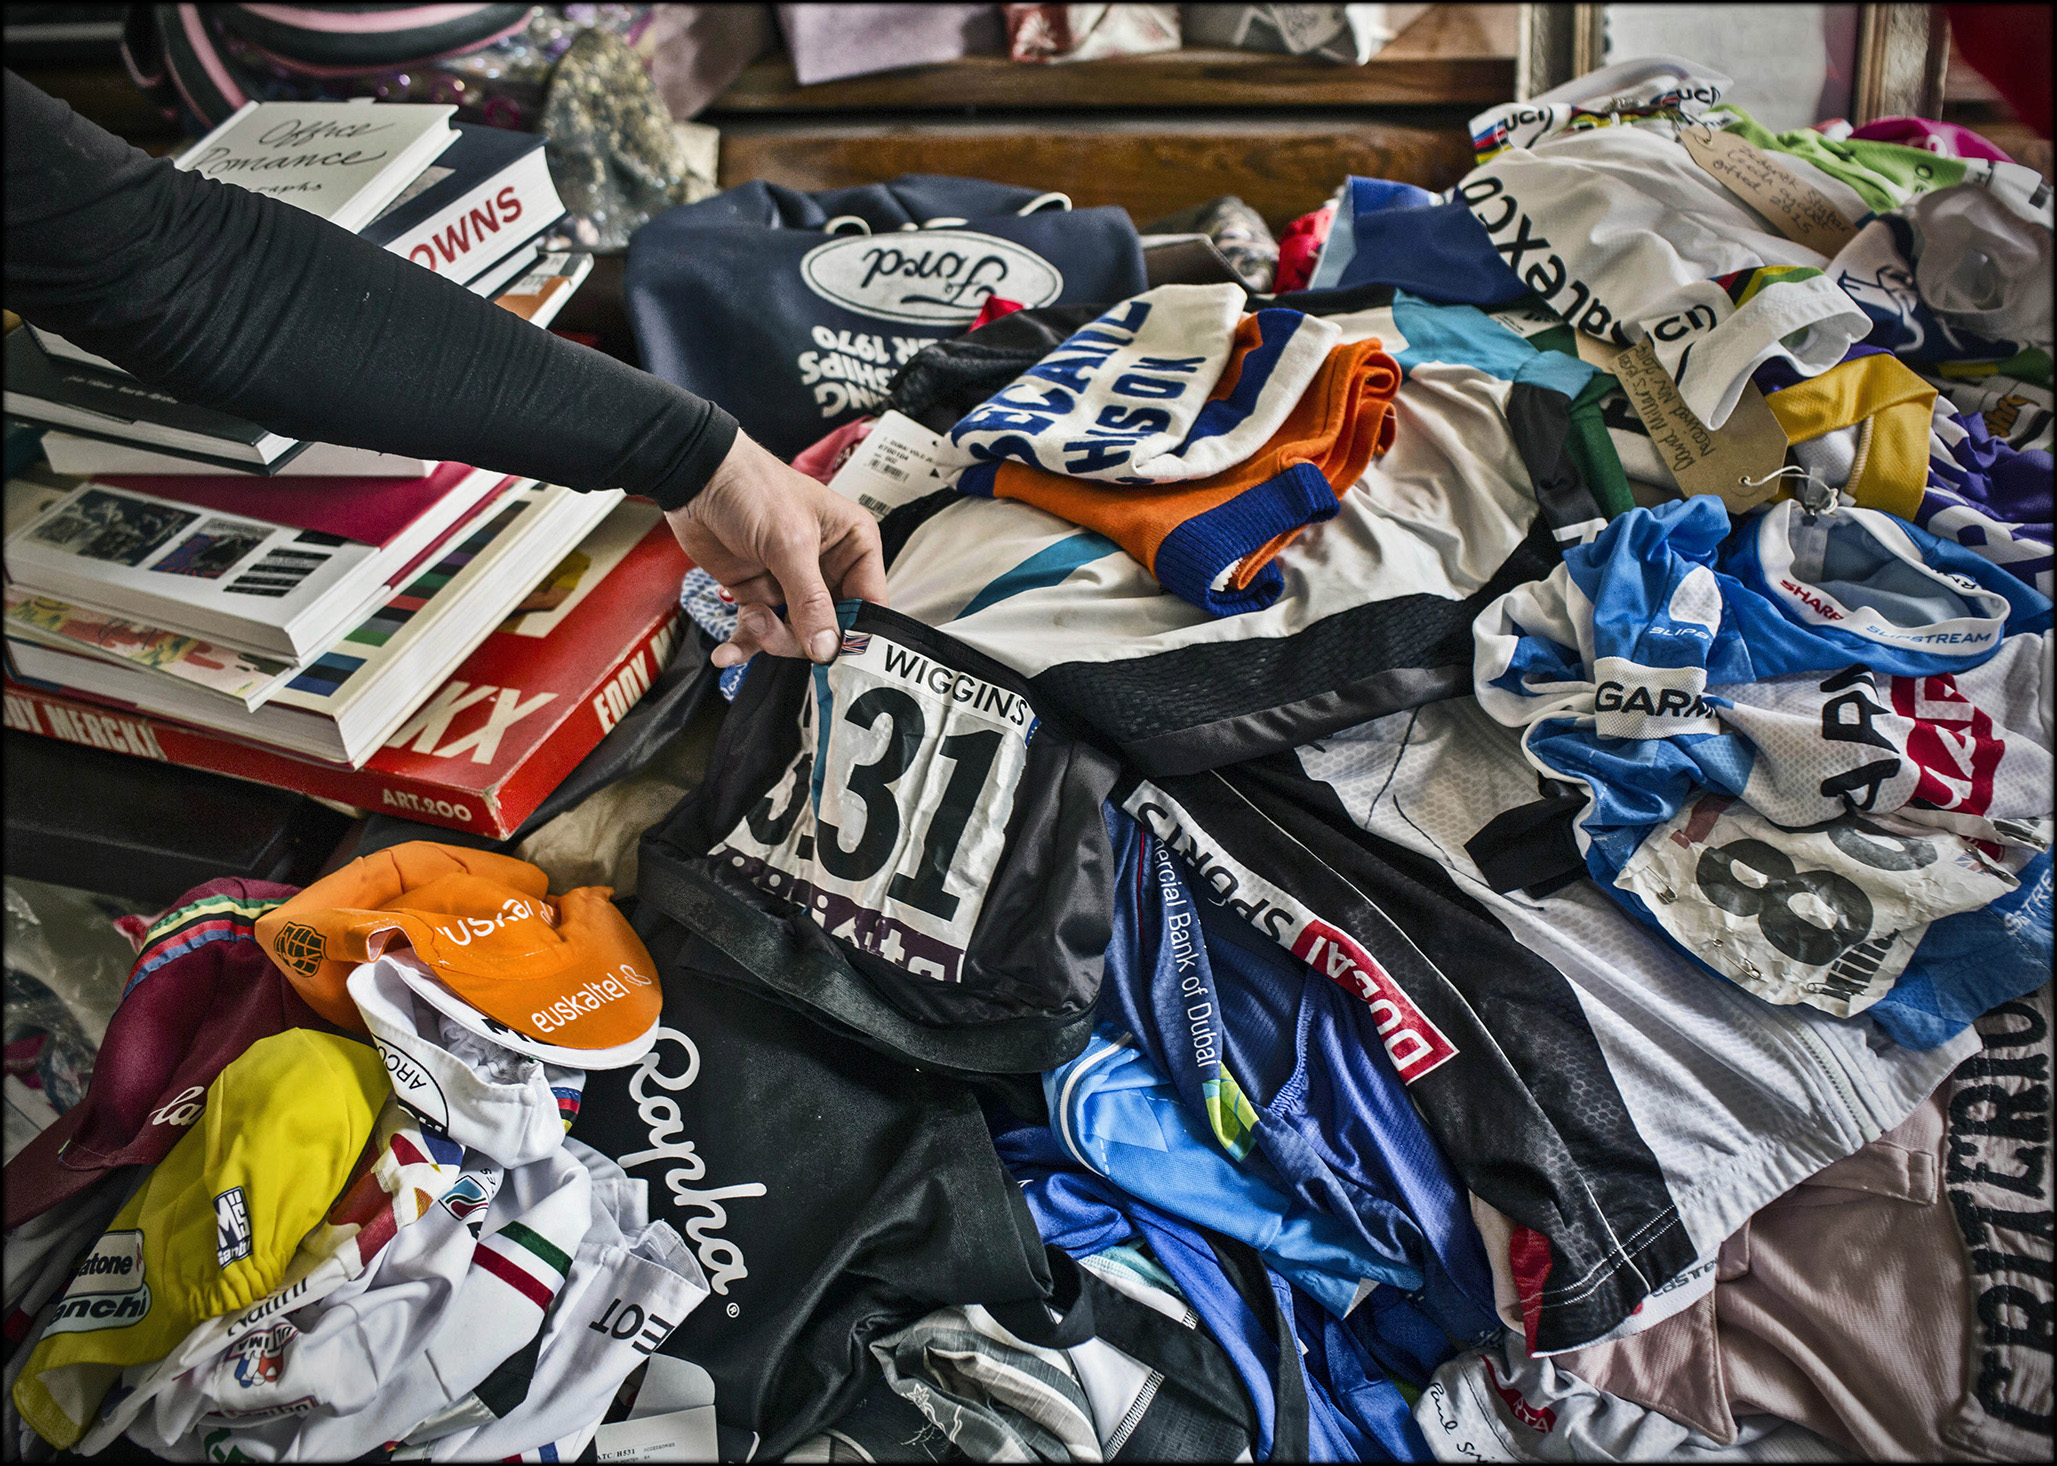 sir paul smith's jersey collection